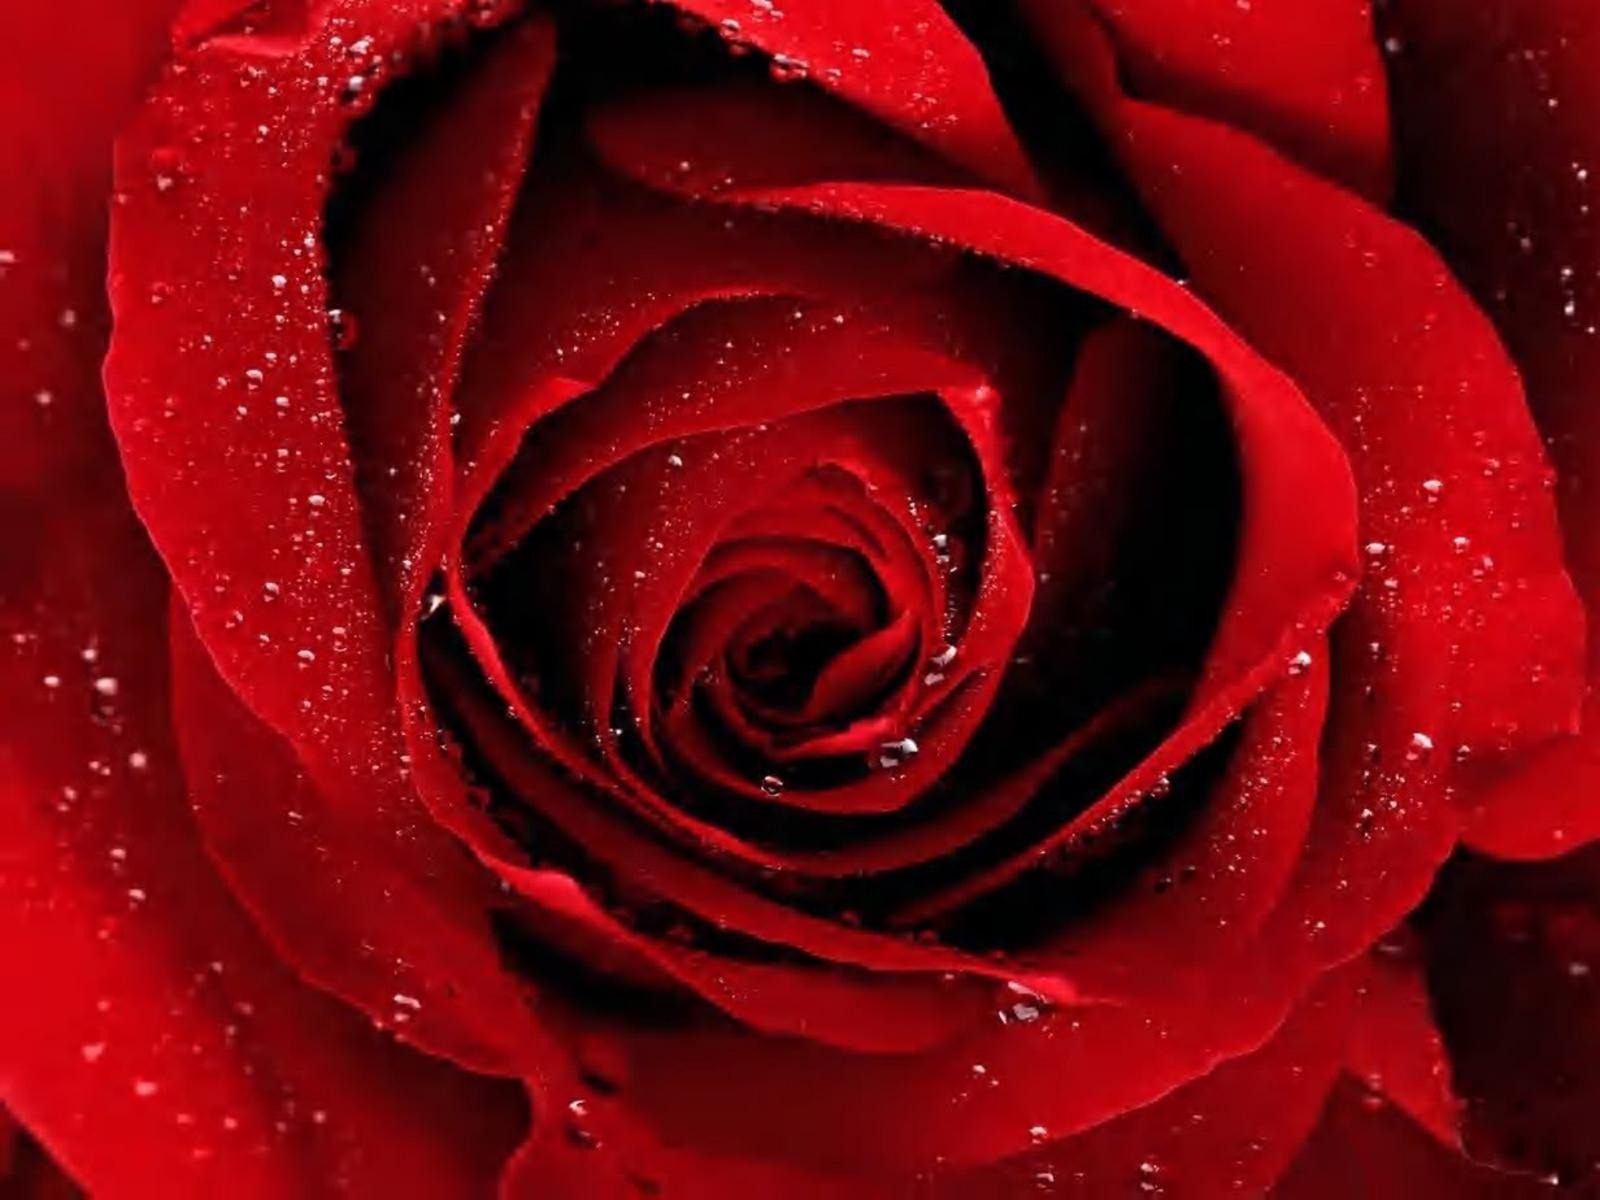 Red rose black backgrounds wallpaper cave - Pink rose black background wallpaper ...